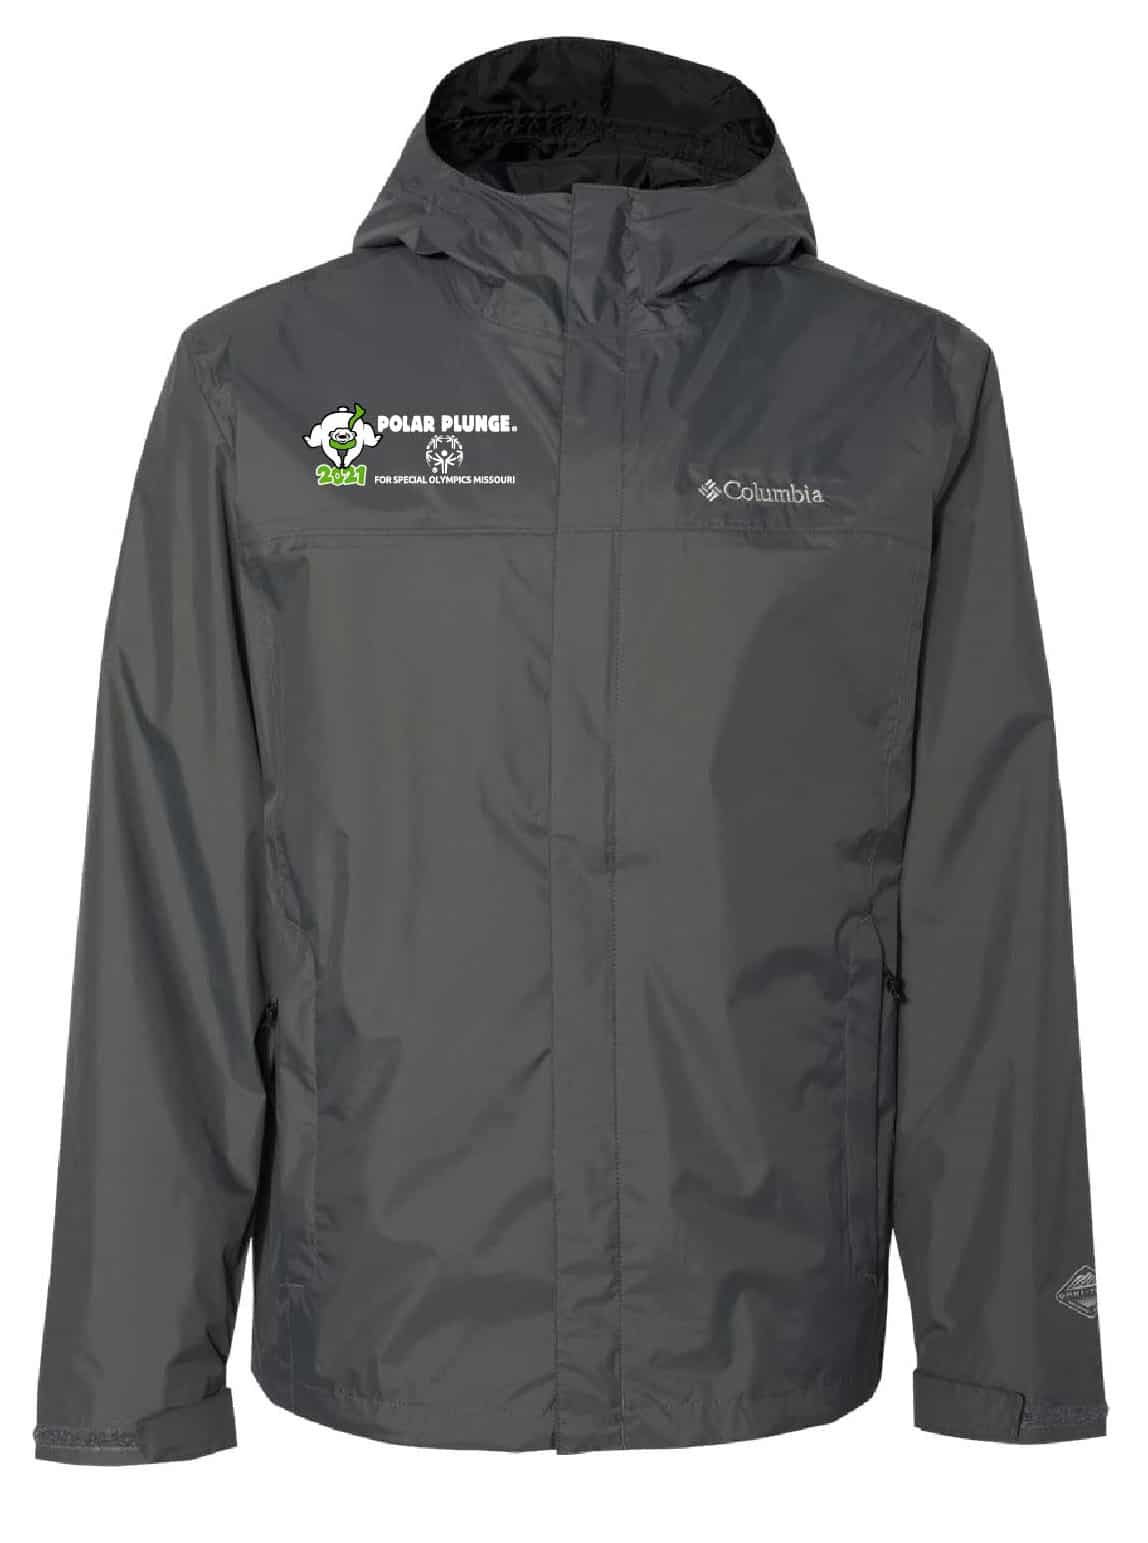 A gray jacket with a 2021 Polar Plunge logo on it